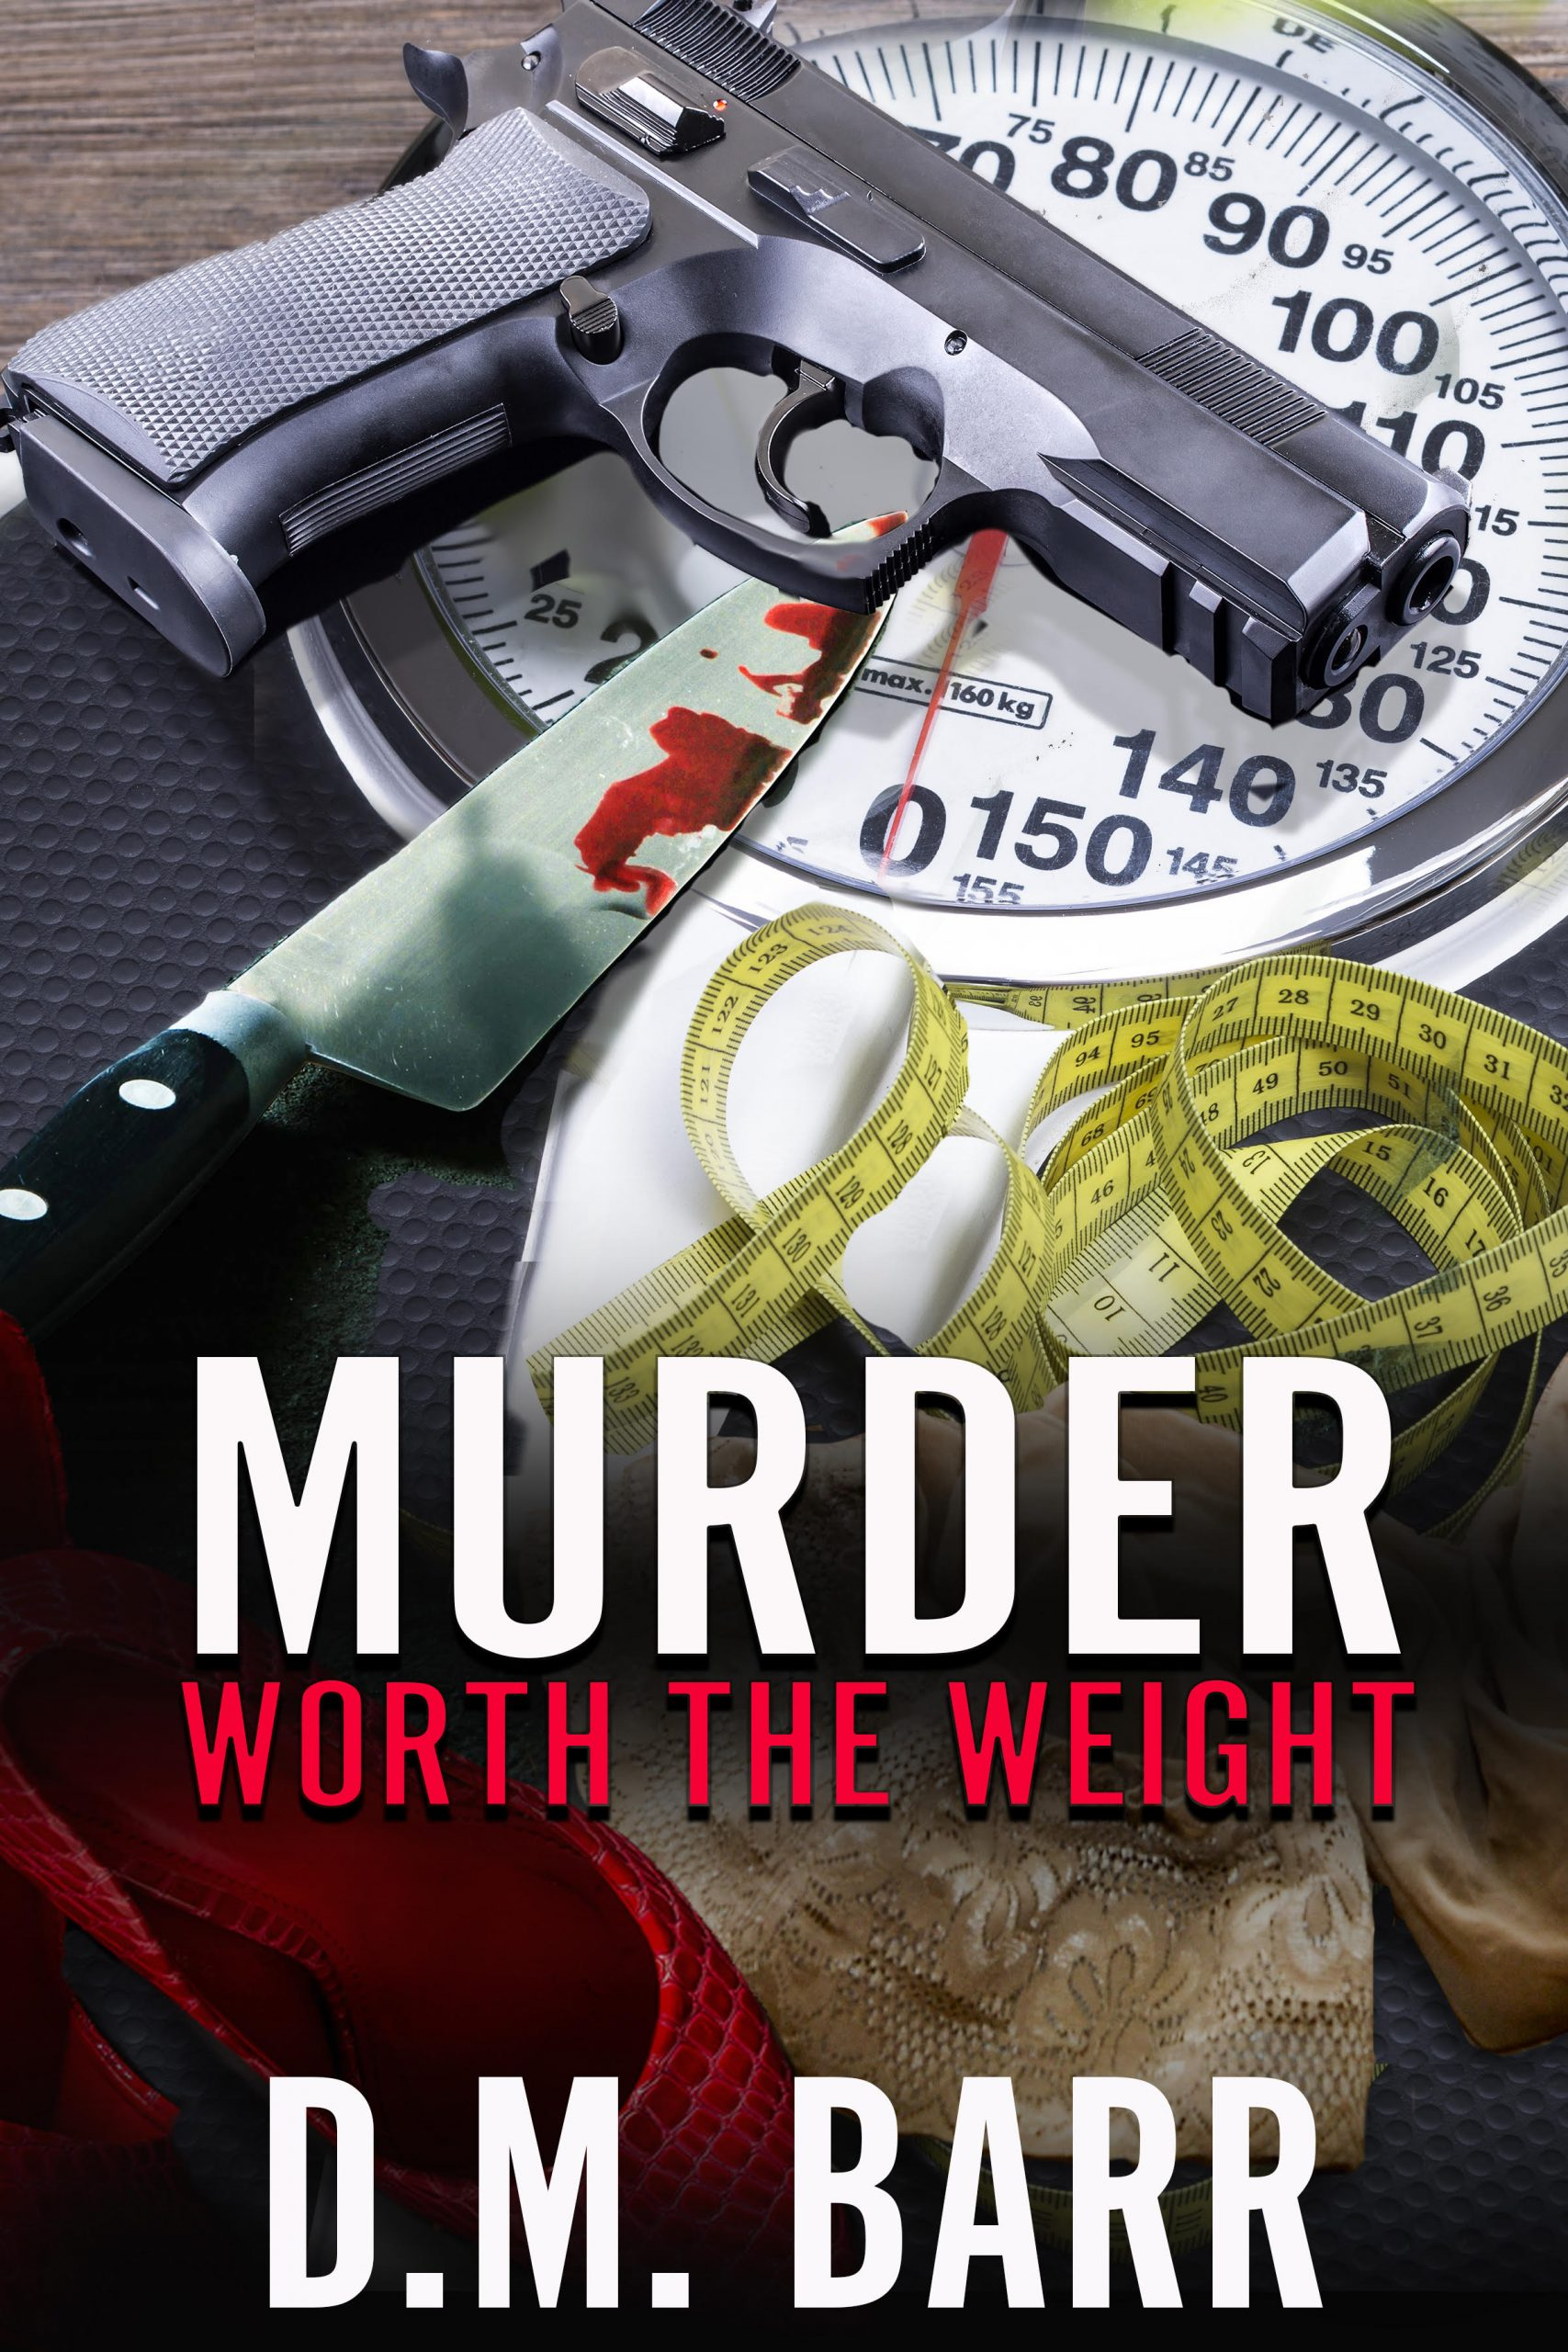 Murder Worth the Wait by D.M. Barr